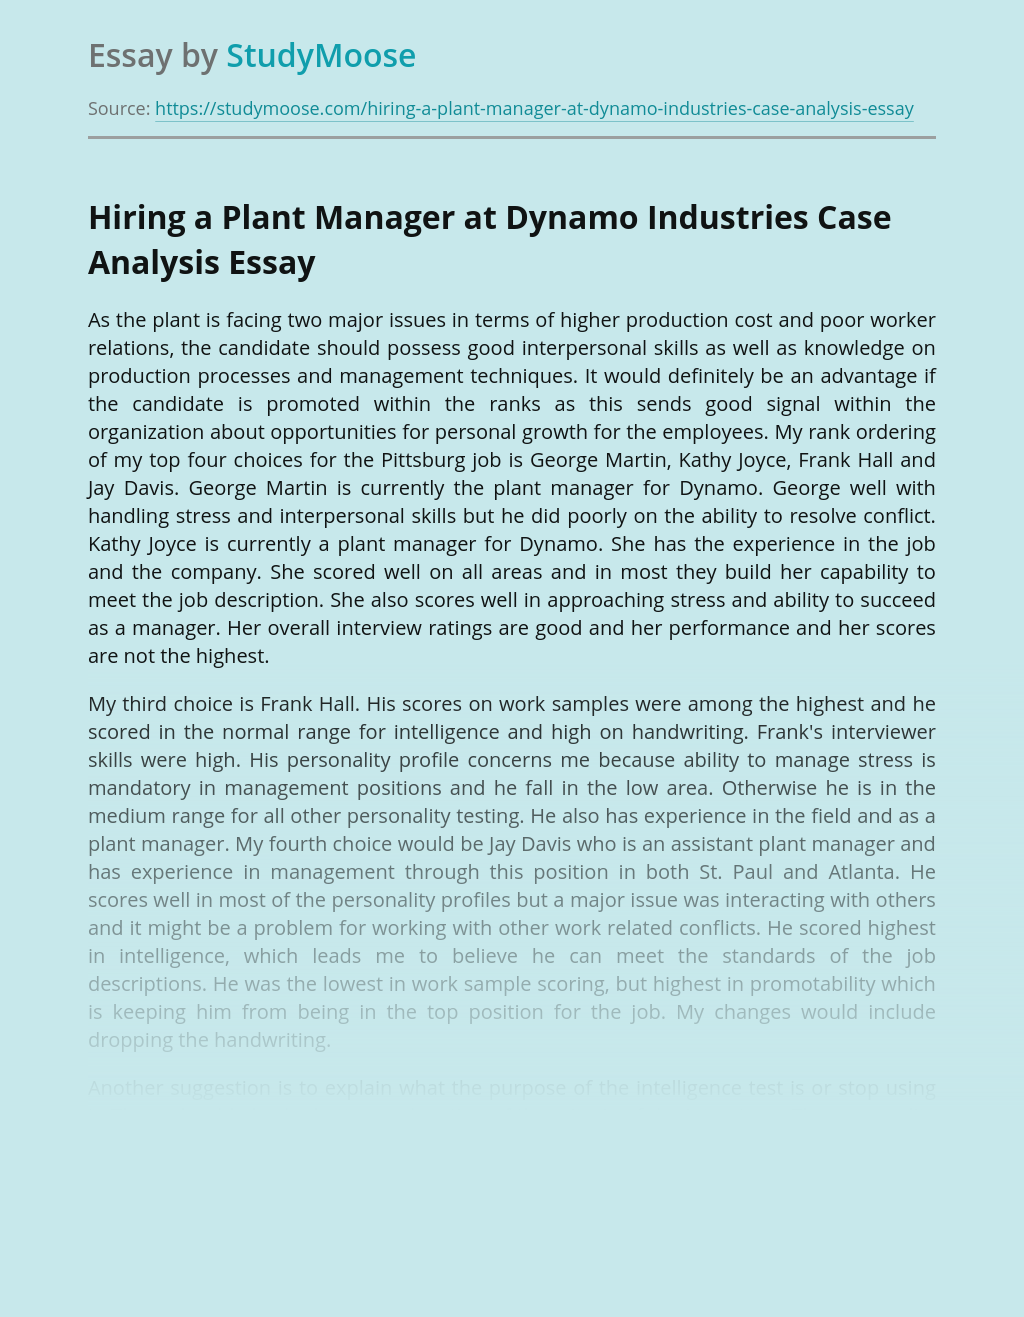 Analysis of Human Resource Management at Dynamo Industries